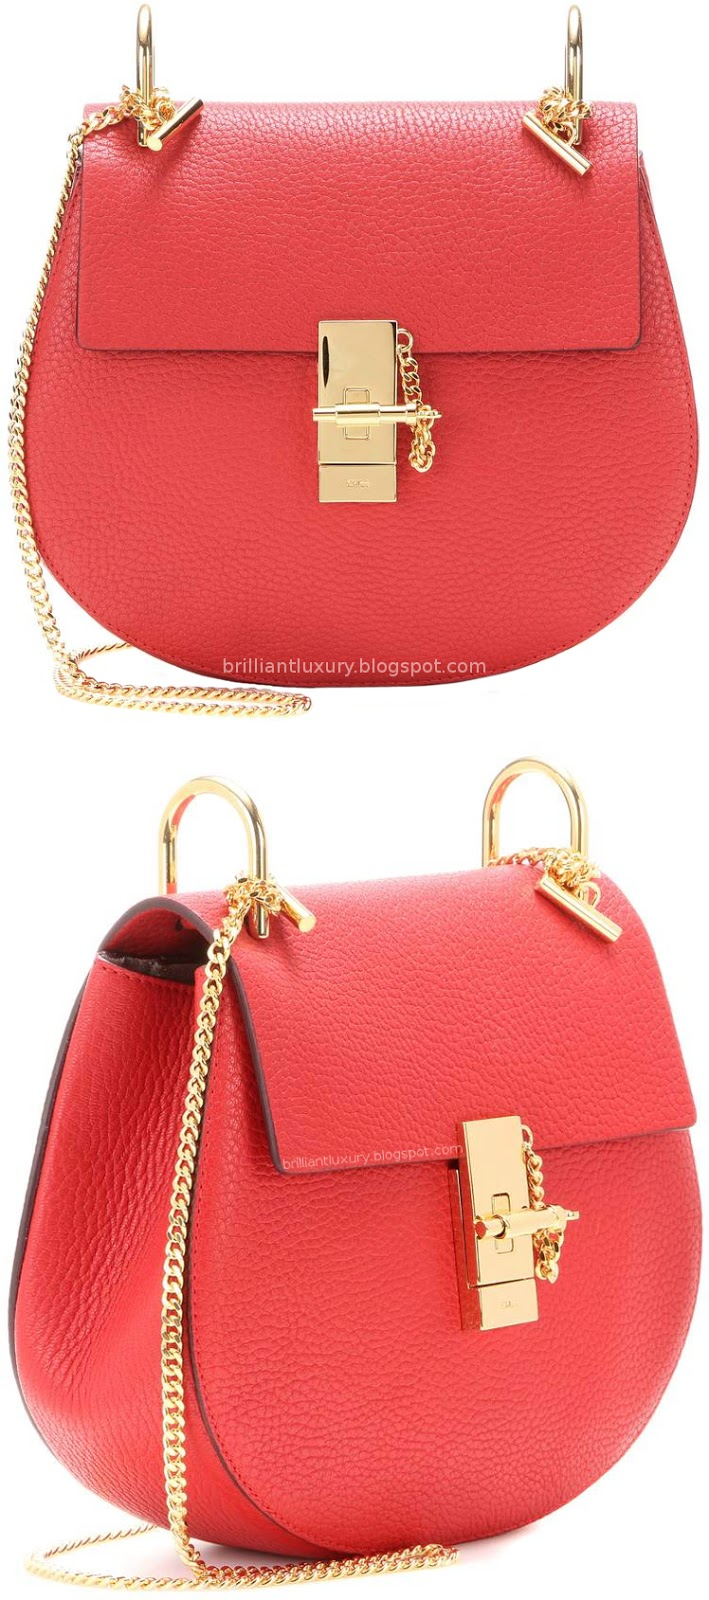 Brilliant Luxury ♦ Chloé Drew classy red small leather shoulder bag